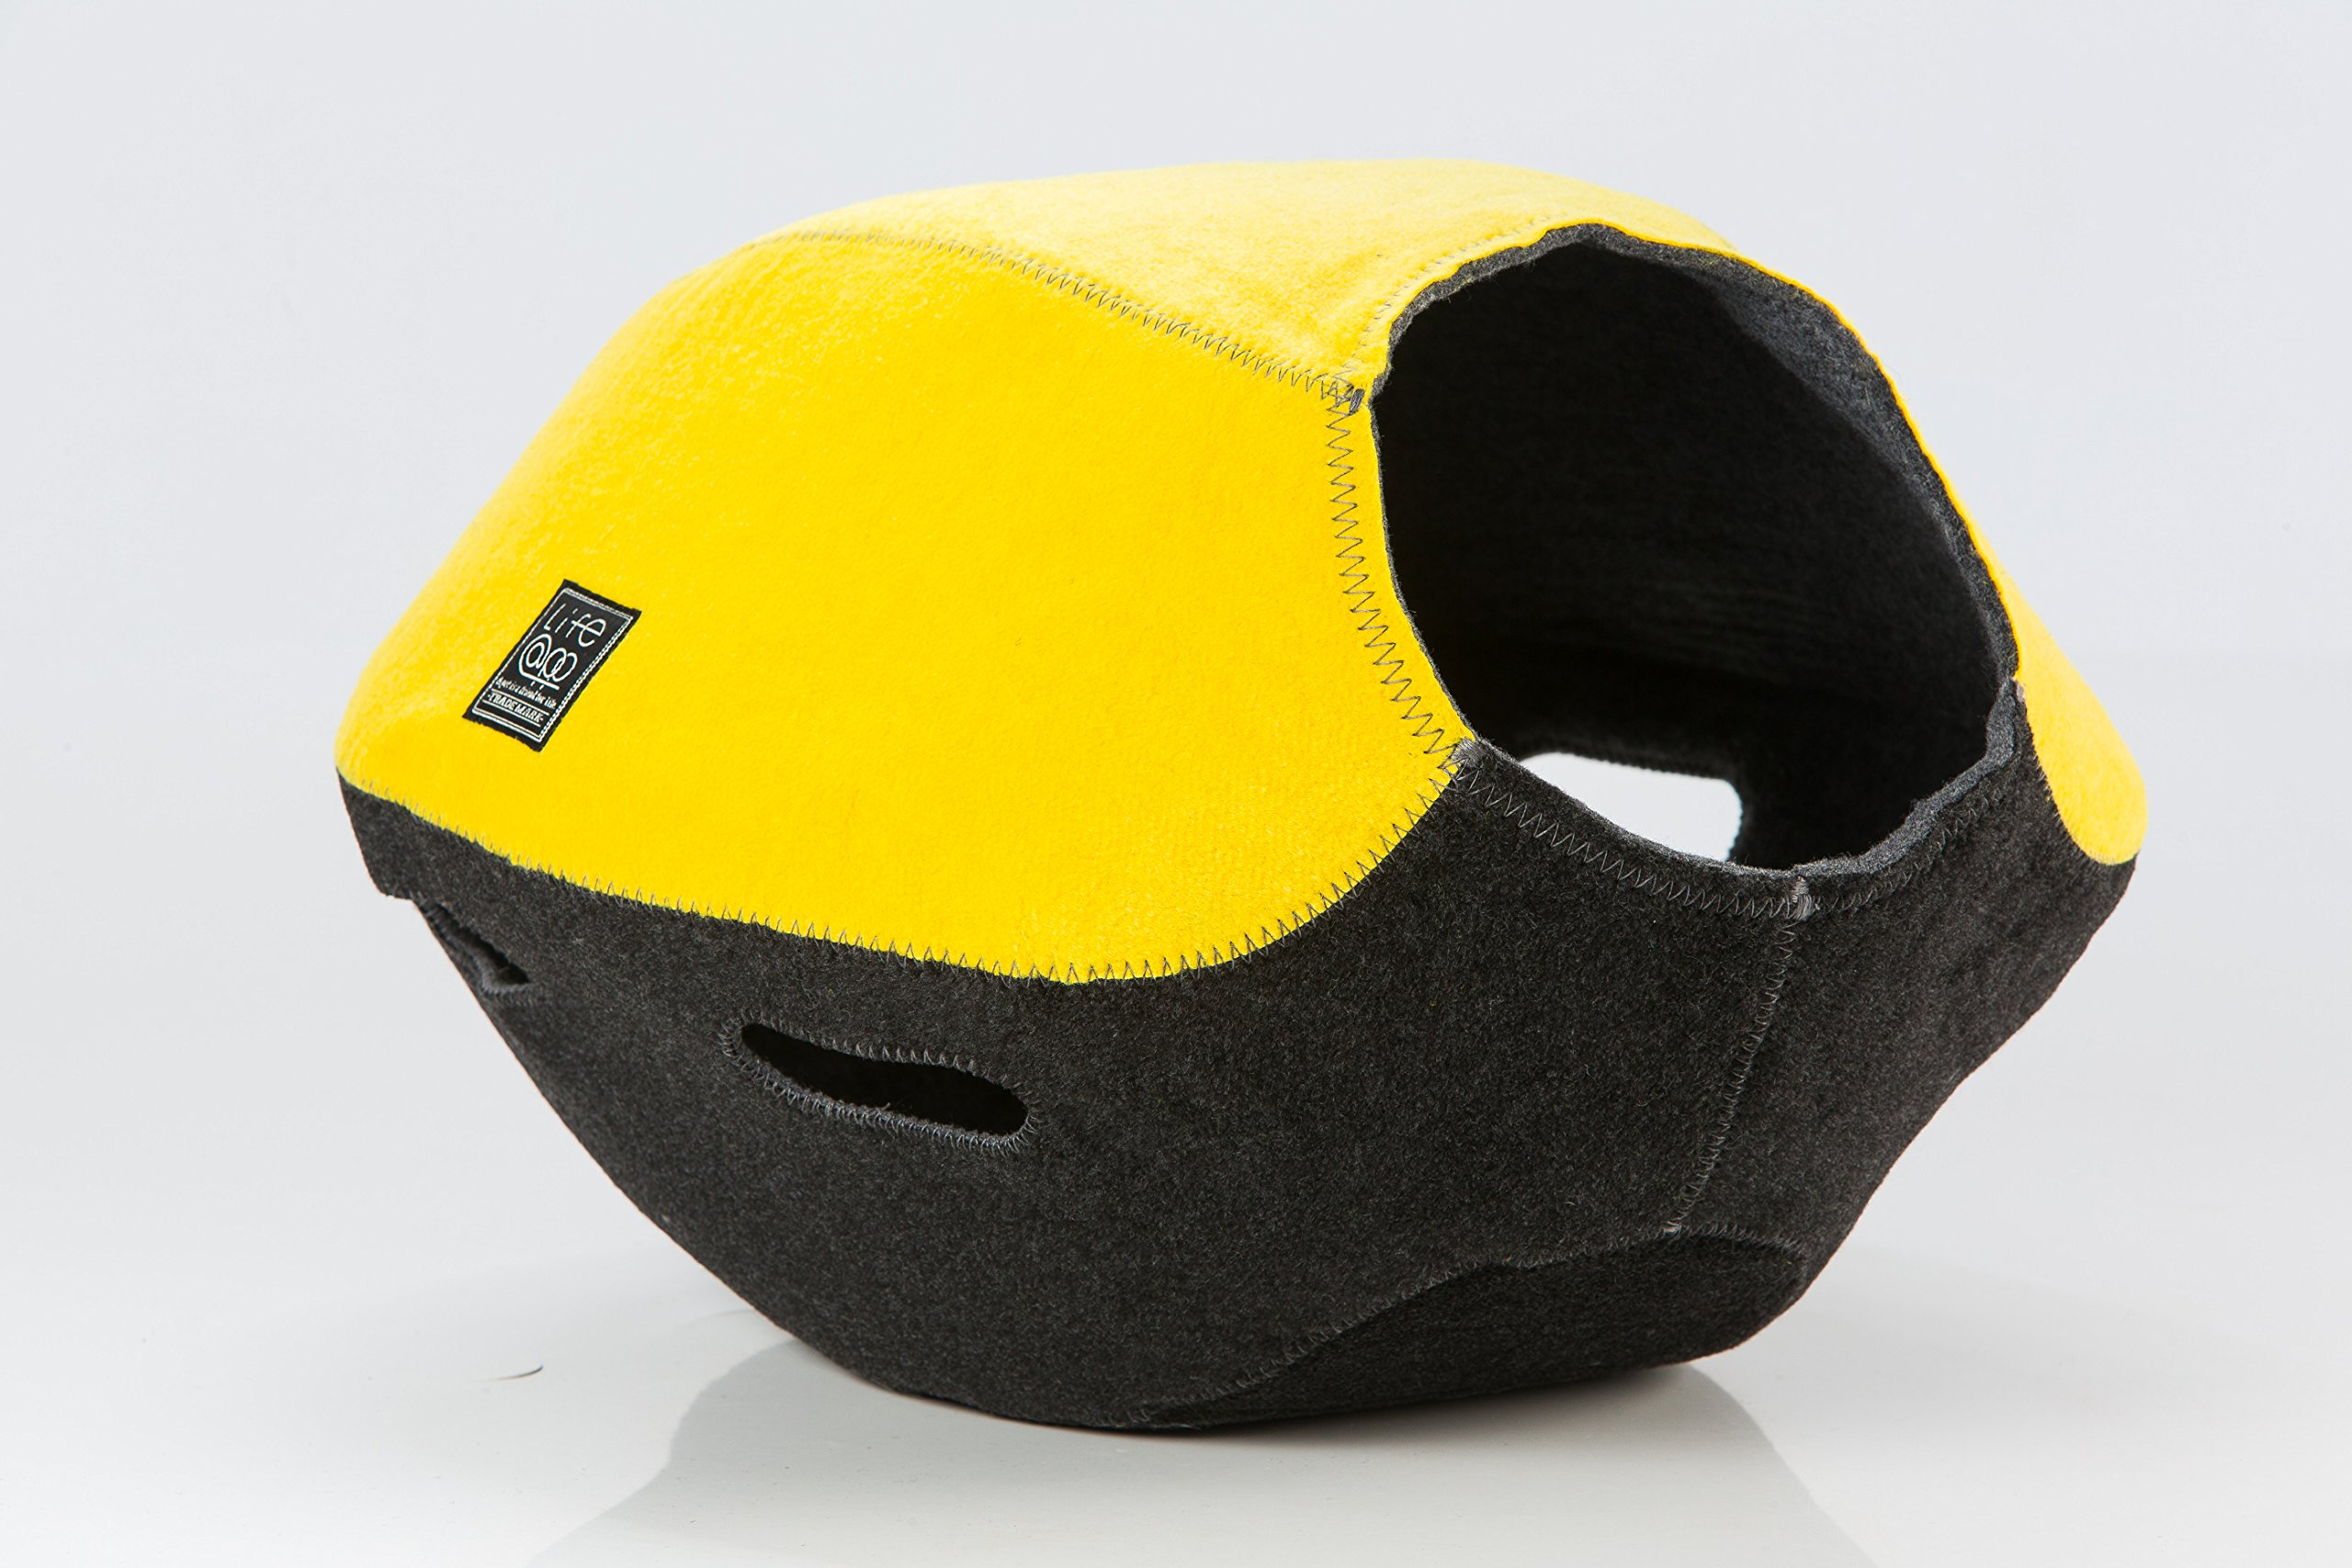 Life@pp 2 in 1 Cat Cave Bed Pet Bowl-Shaped Bed Mat Hand-Made Nest Comfortable Cozy (Yellow)